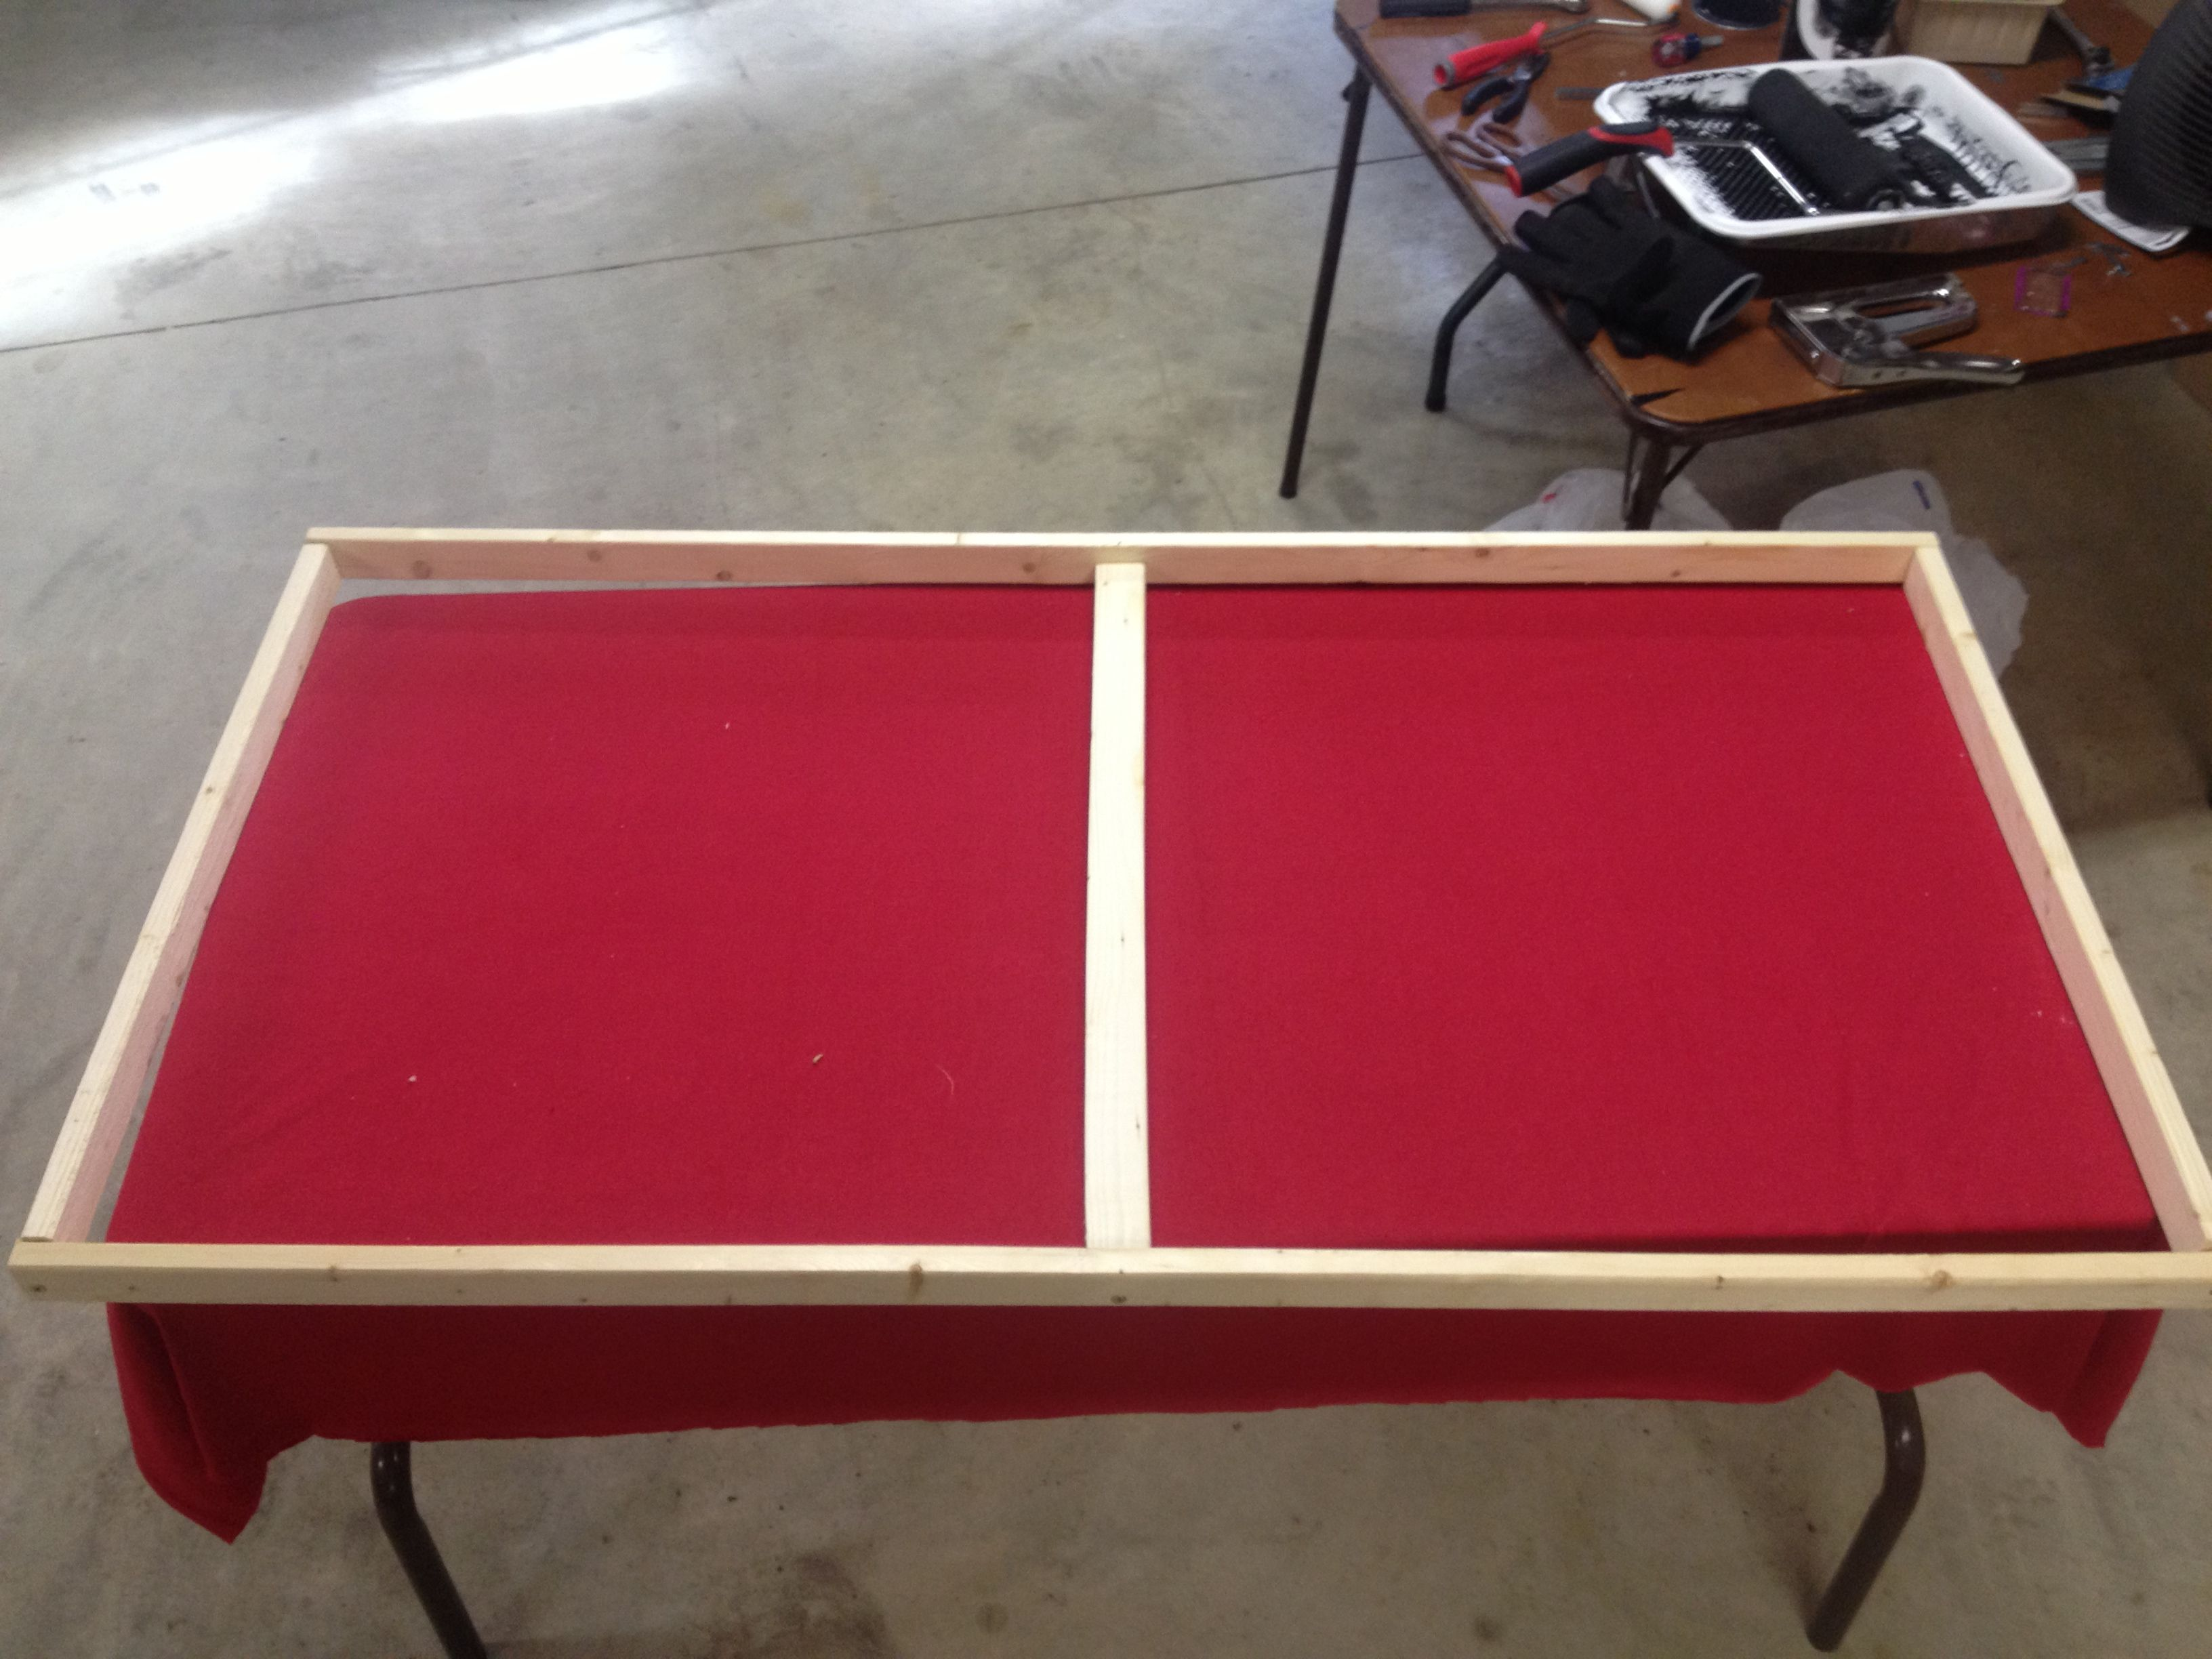 DIY Sound Proof Panels (Step-by-Step)